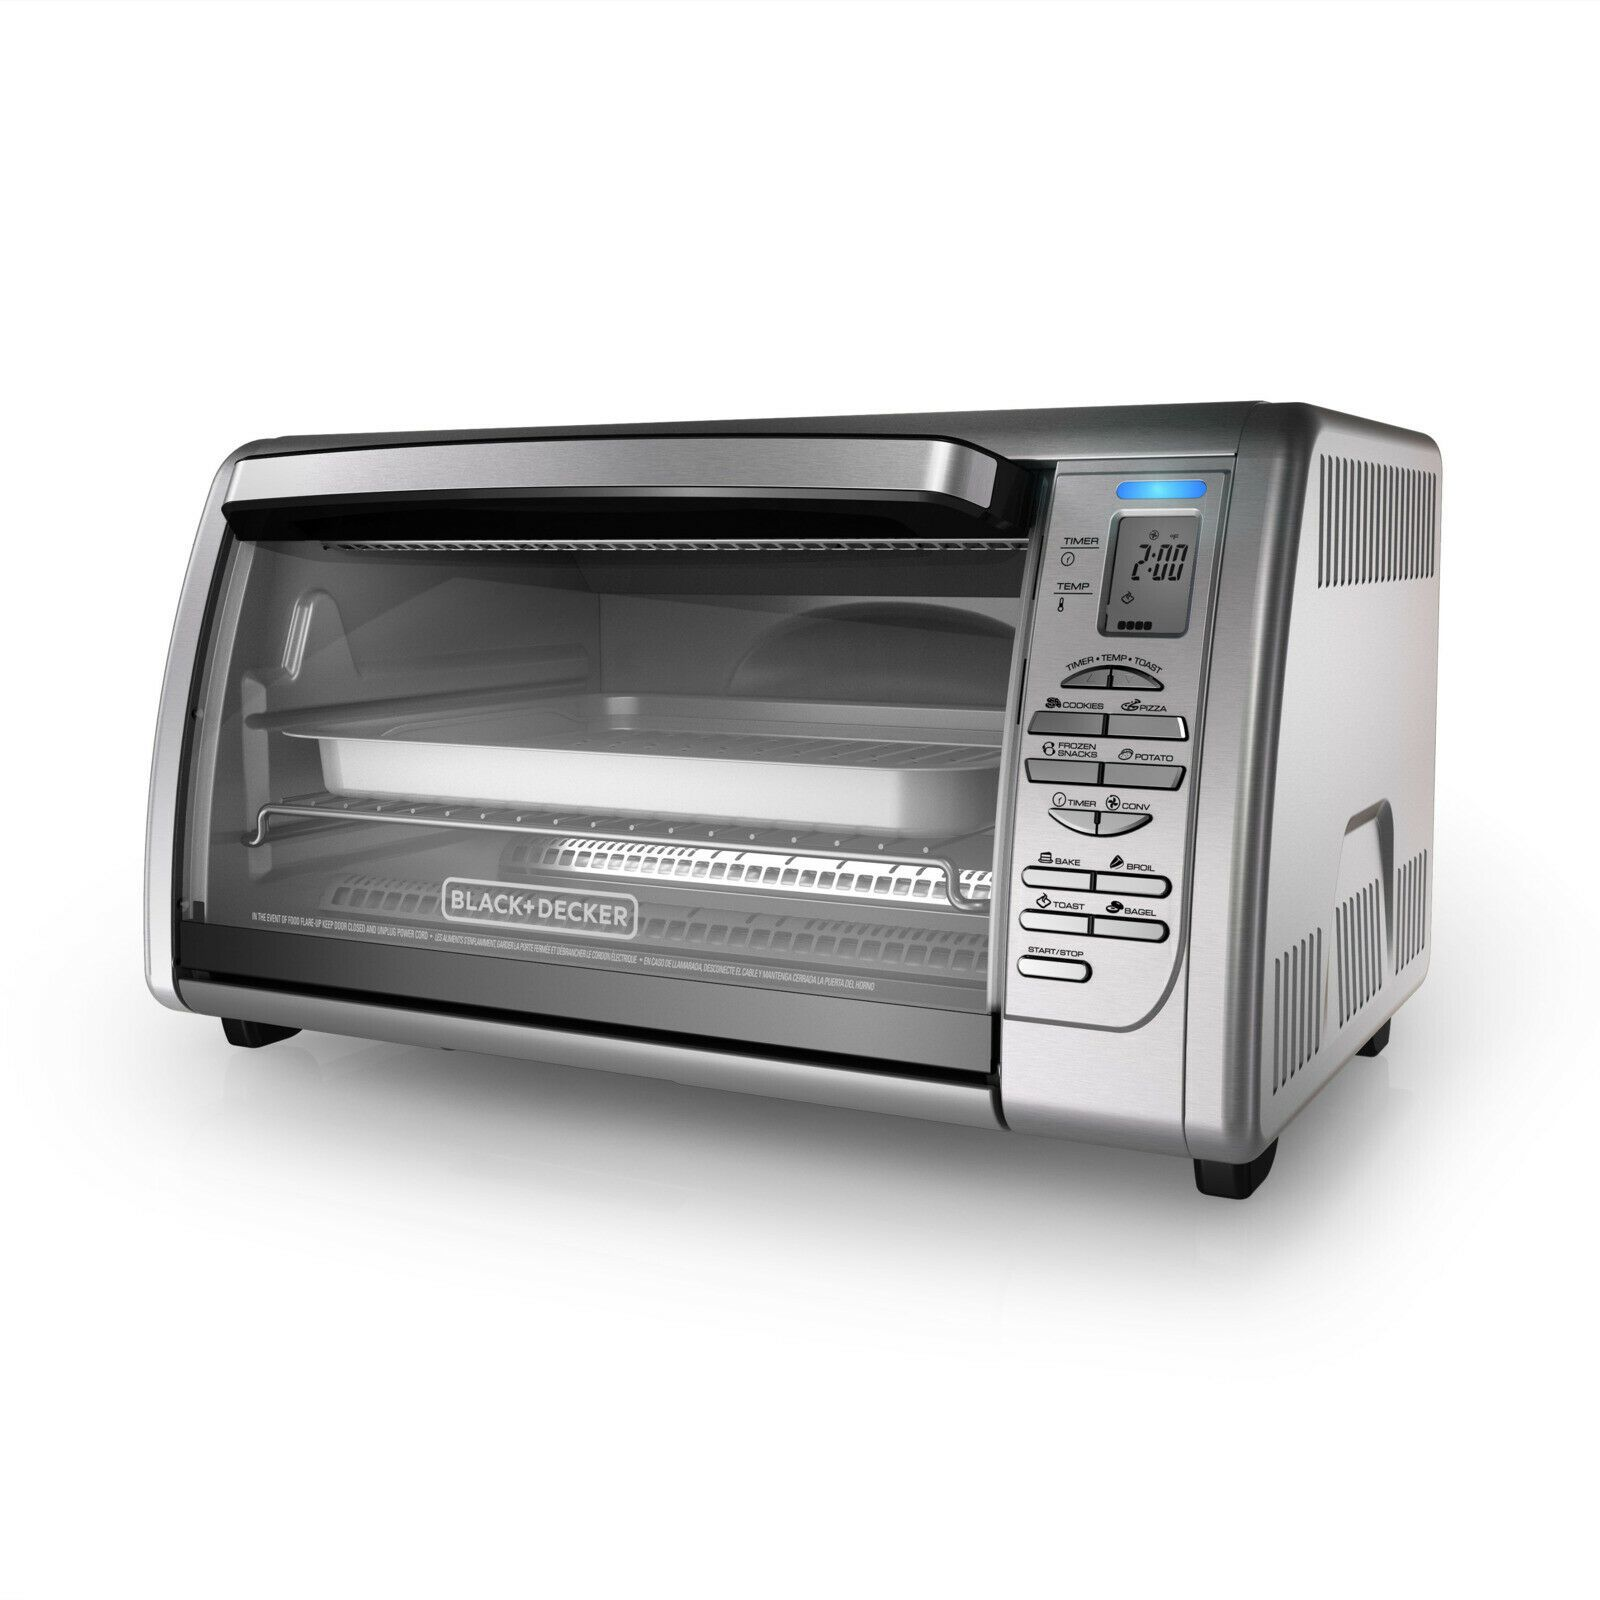 Black Decker Countertop Convection Toaster Oven Stainless Steel